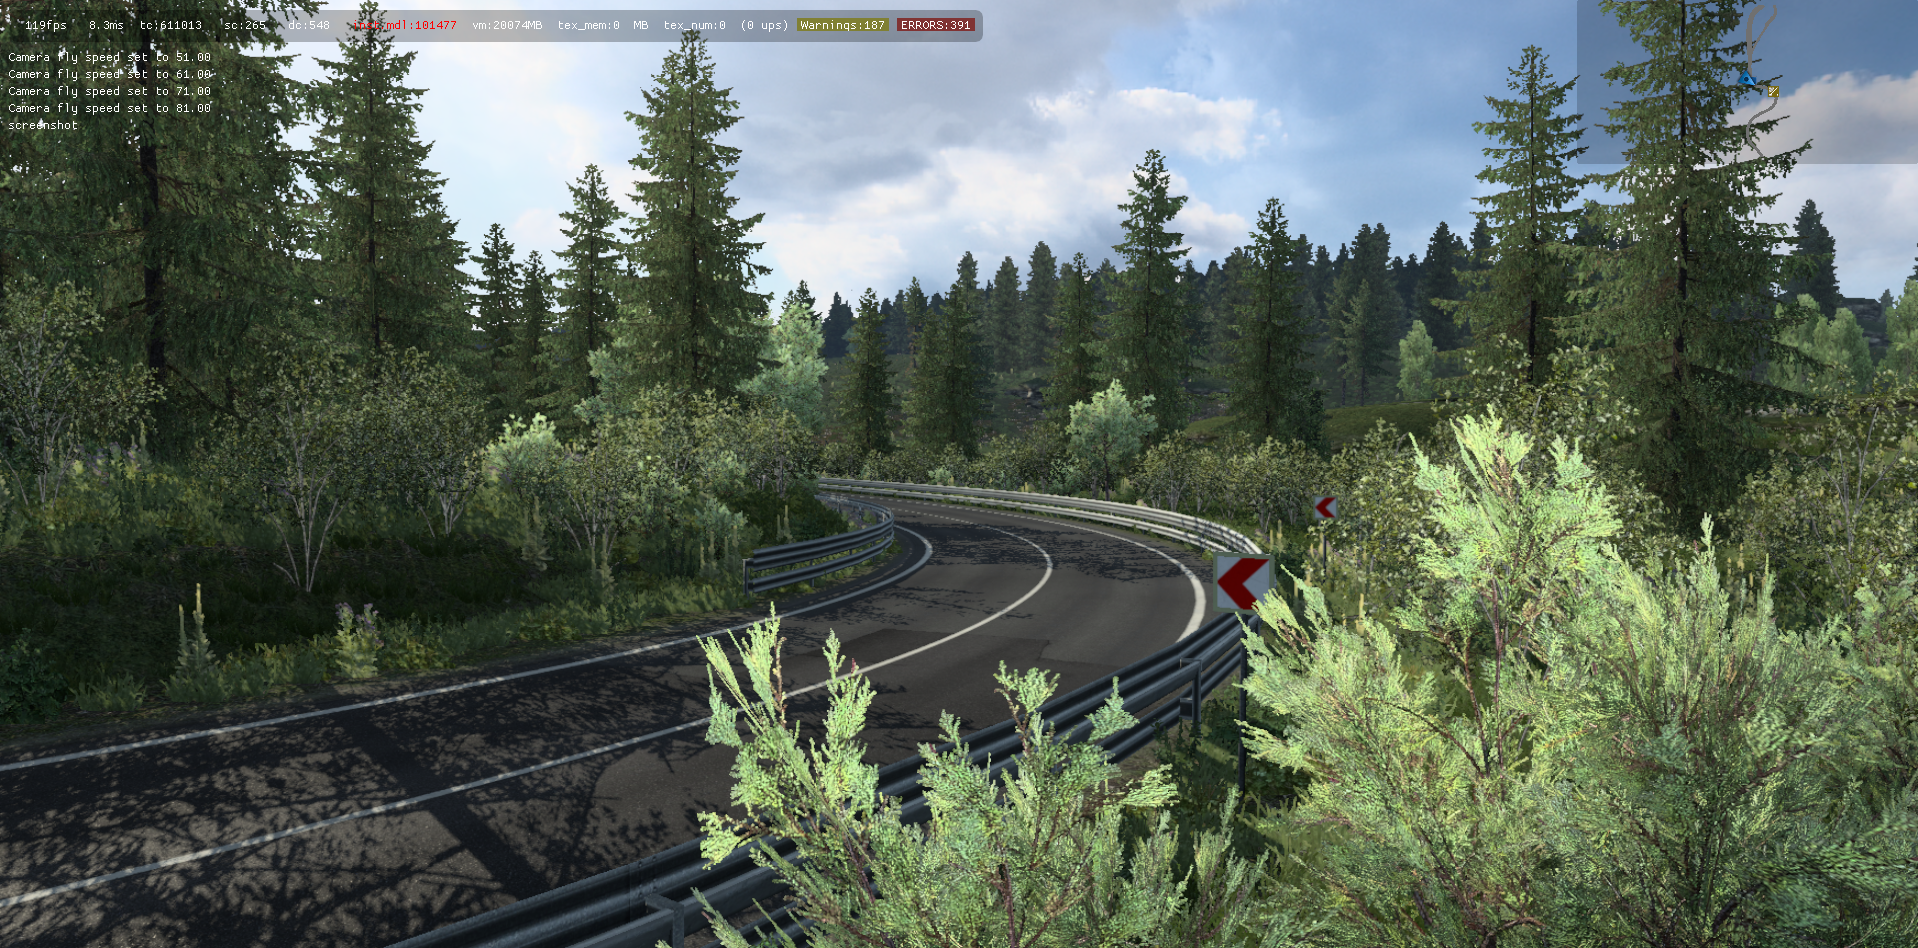 ets2_20210725_221105_00.png